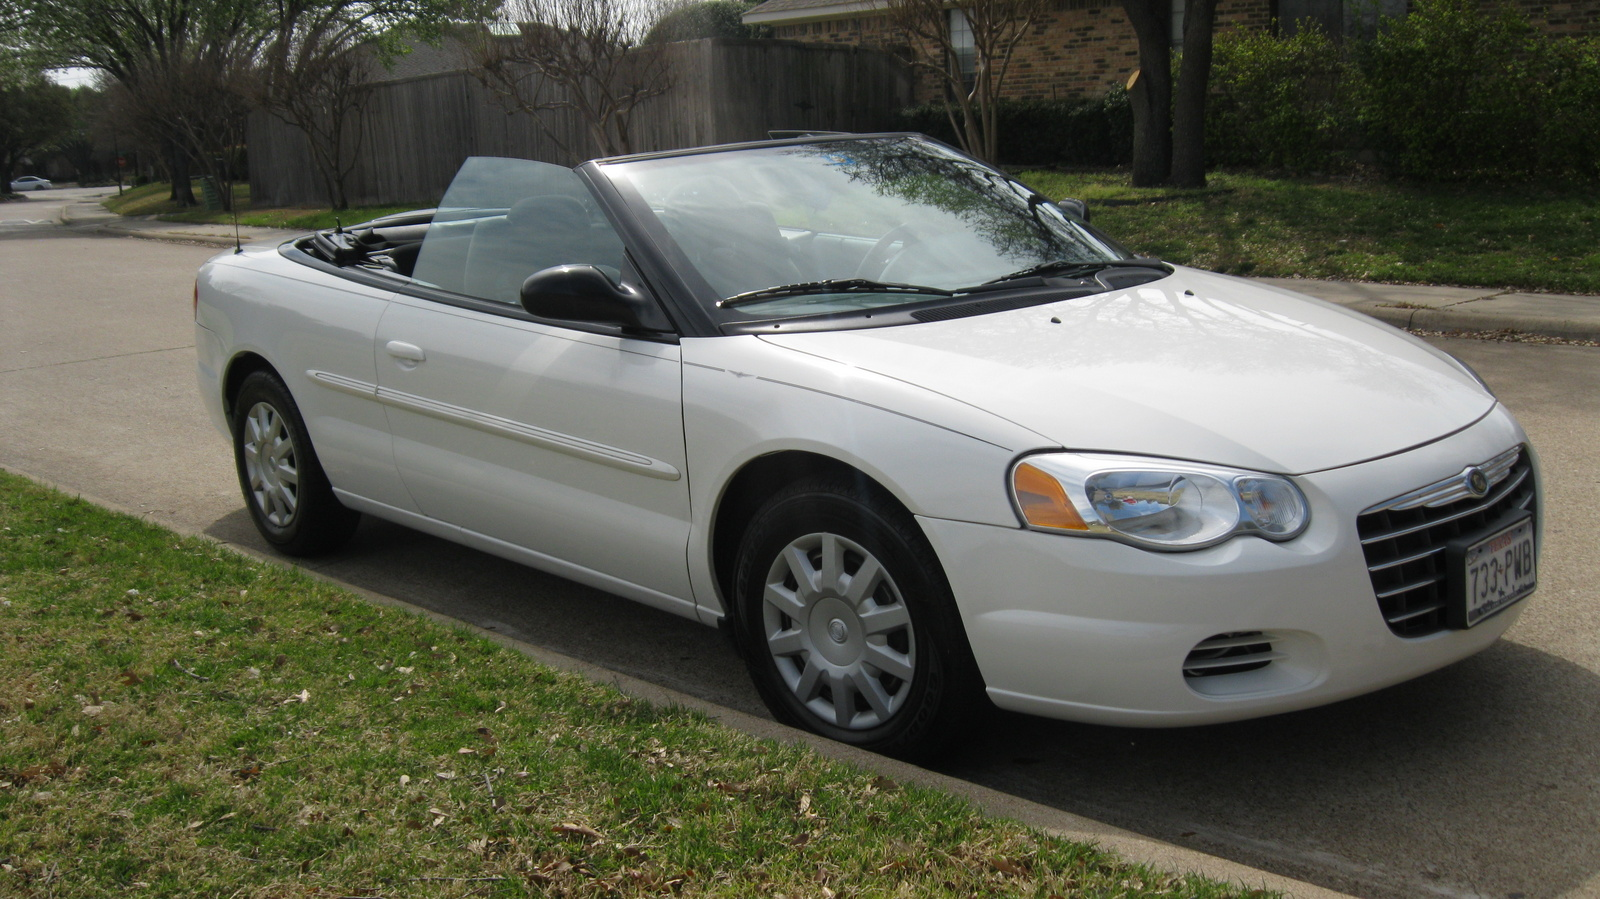 2005 chrysler sebring pictures cargurus. Black Bedroom Furniture Sets. Home Design Ideas